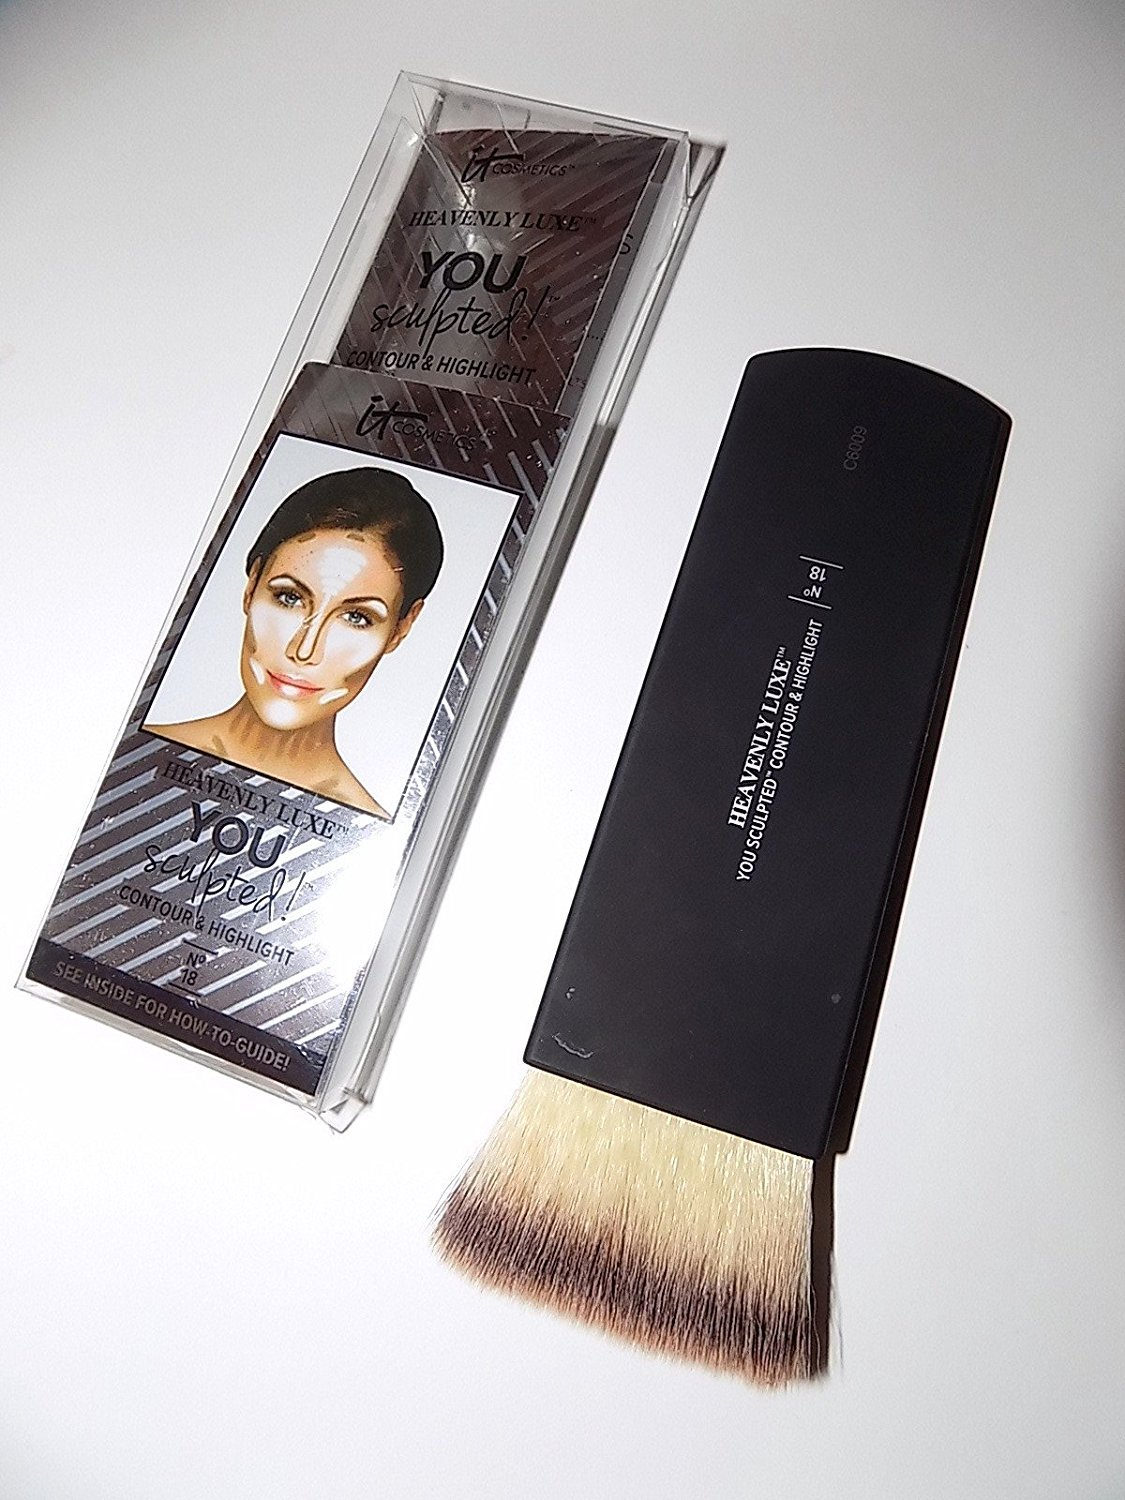 it Cosmetics Heavenly Luxe You Sculpted Contour Highlight Brush - No 18 by It Cosmetics